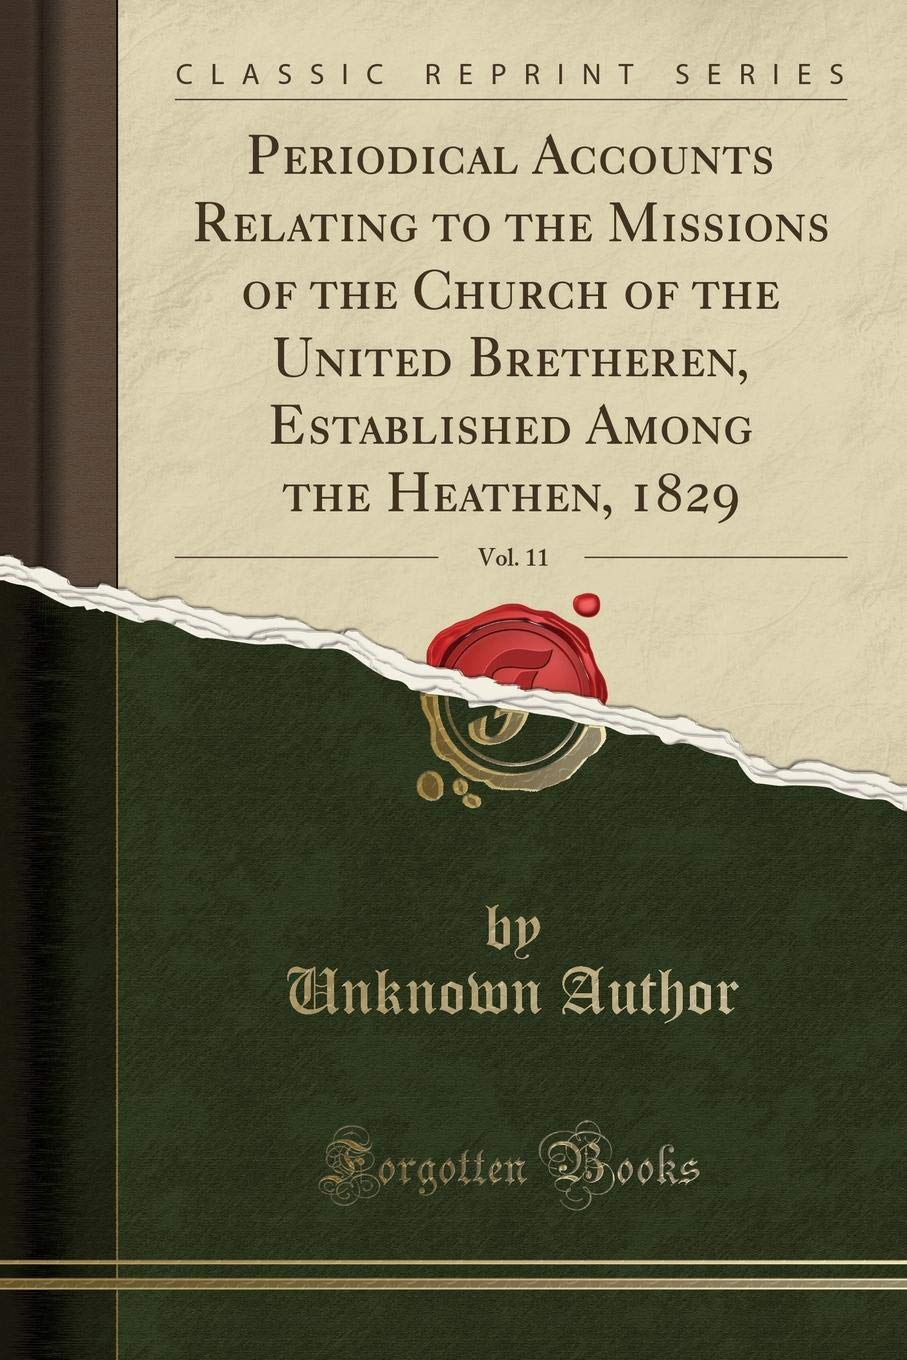 Periodical Accounts Relating to the Missions of the Church of the United Bretheren, Established Among the Heathen, 1829, Vol. 11 (Classic Reprint) pdf epub